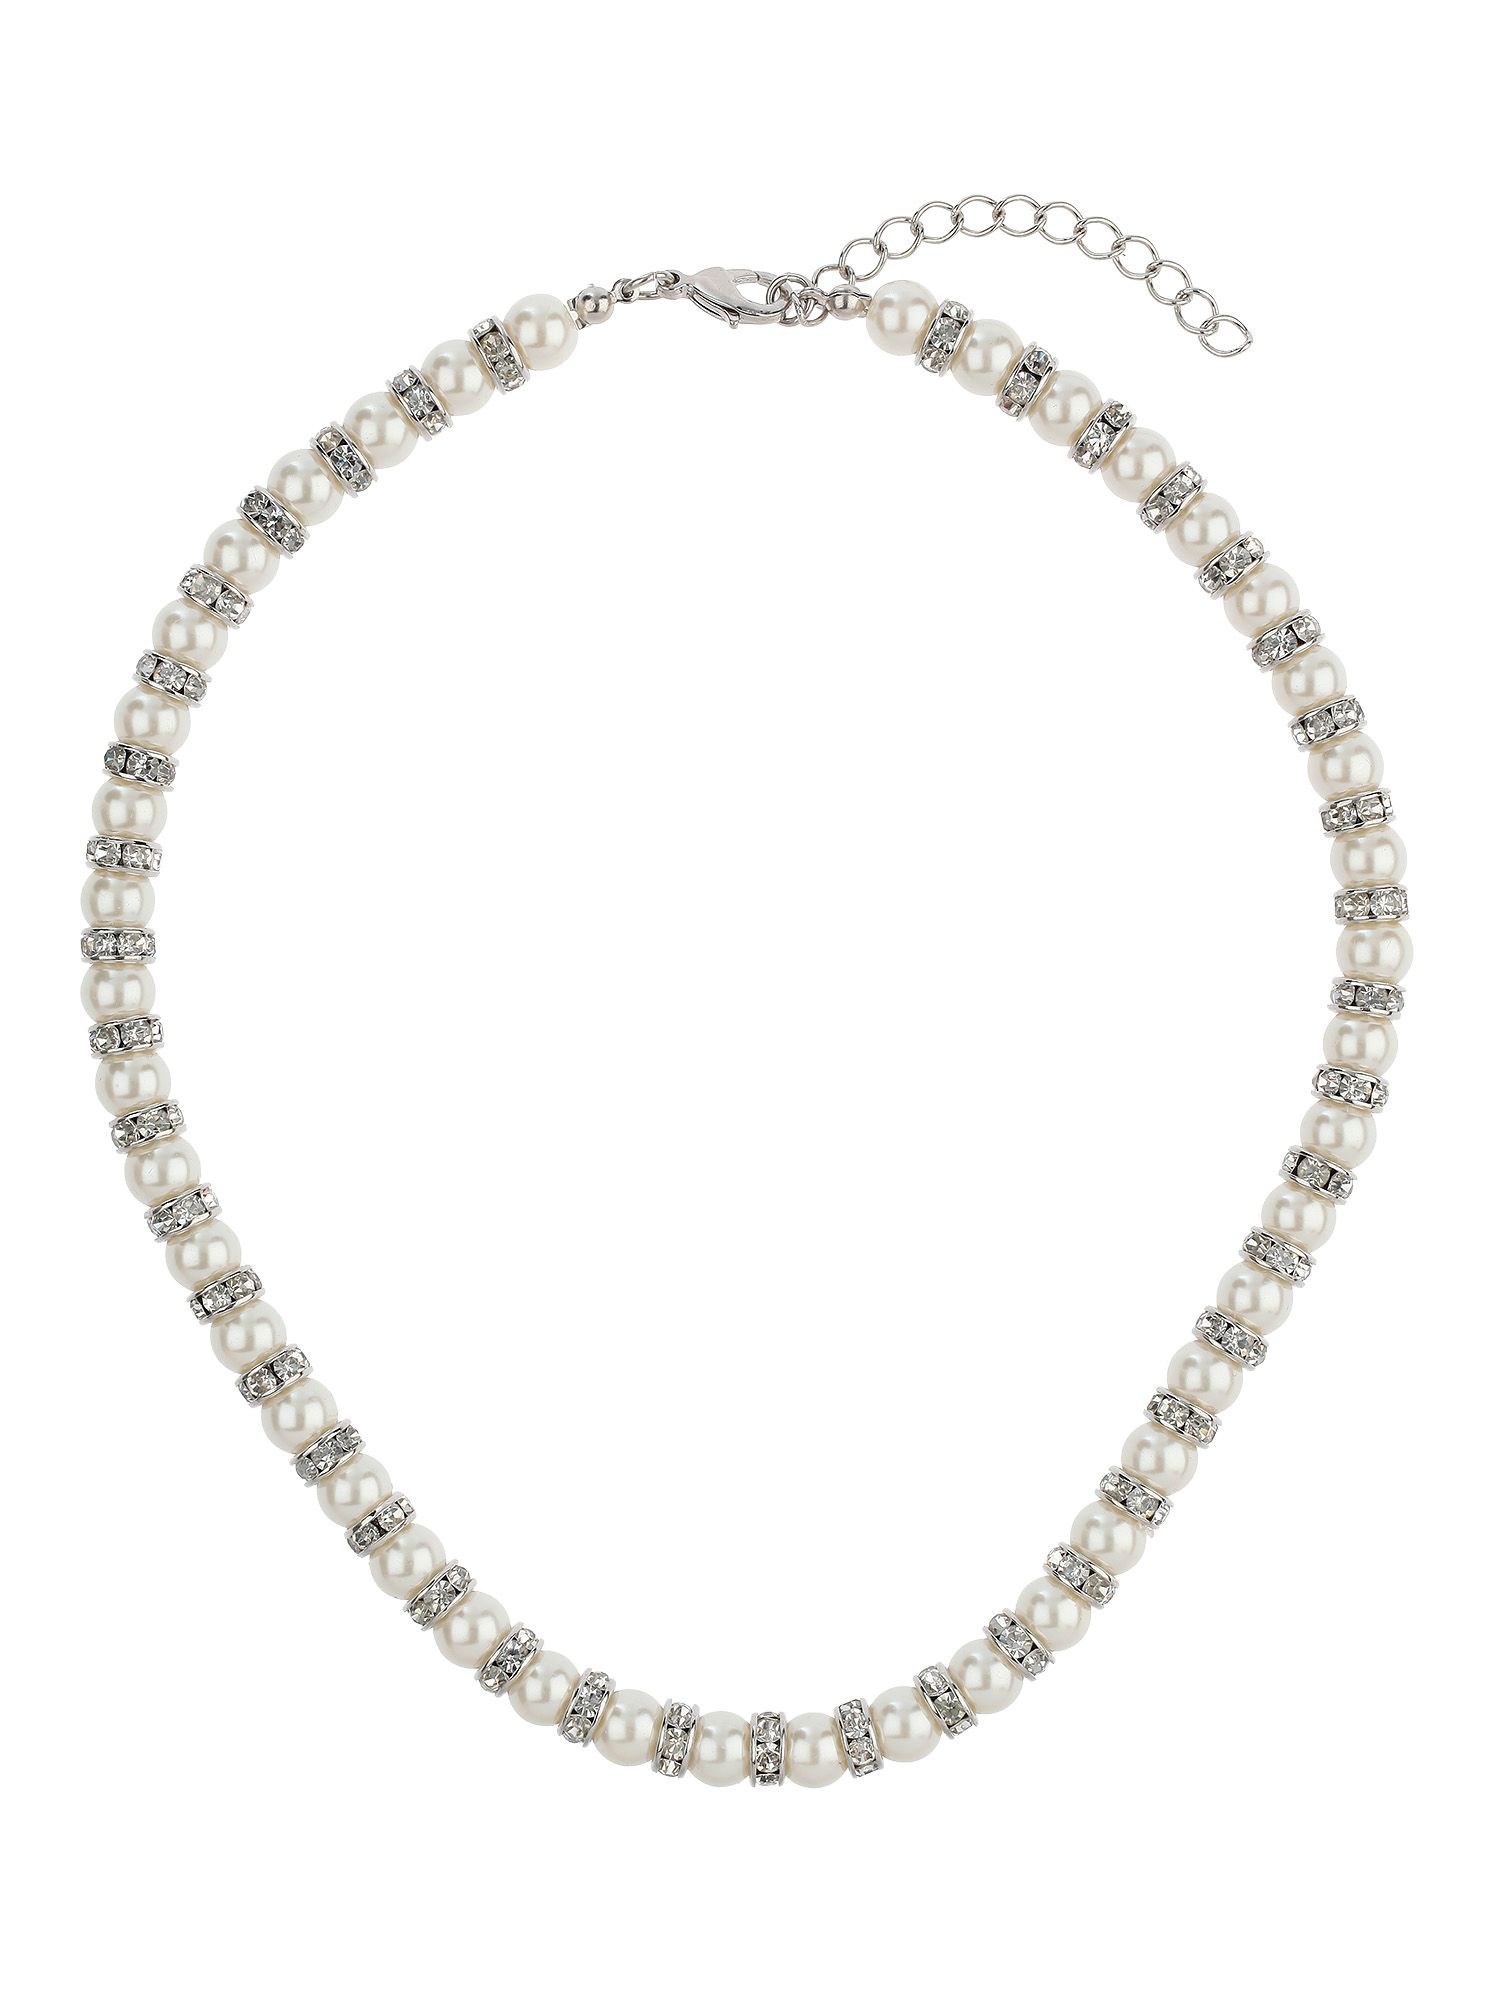 Pearl with crystal ring necklace